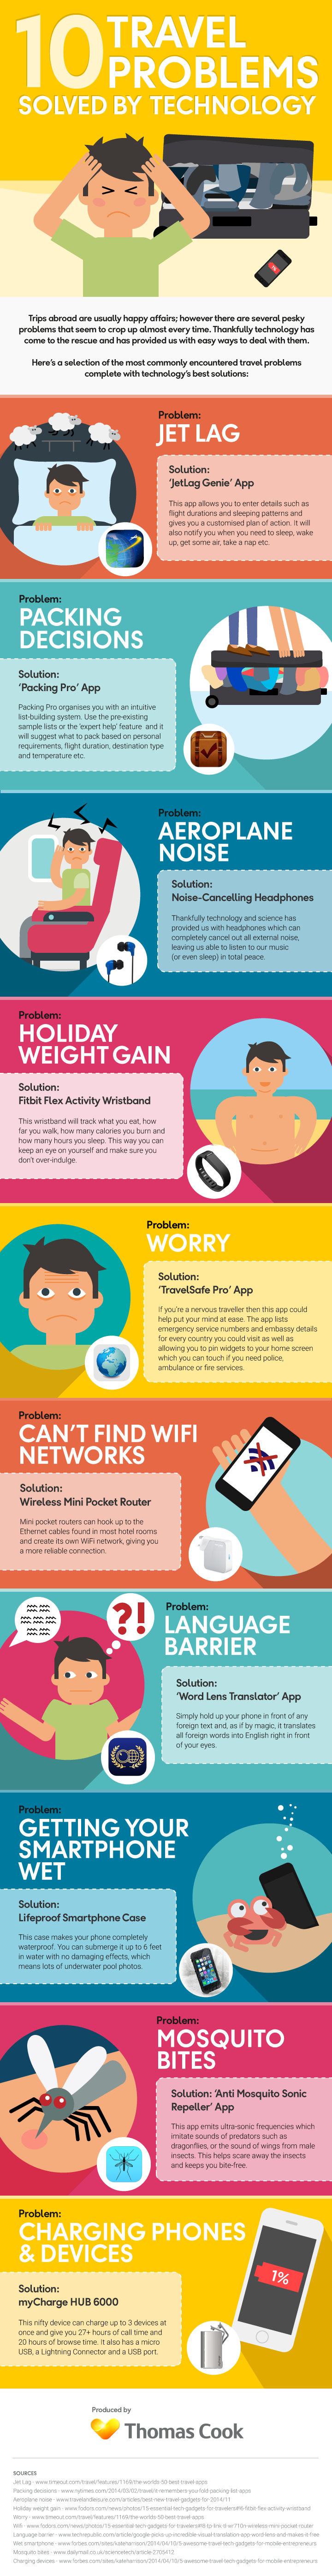 10 Travel Problems Solved by Technology #infographic